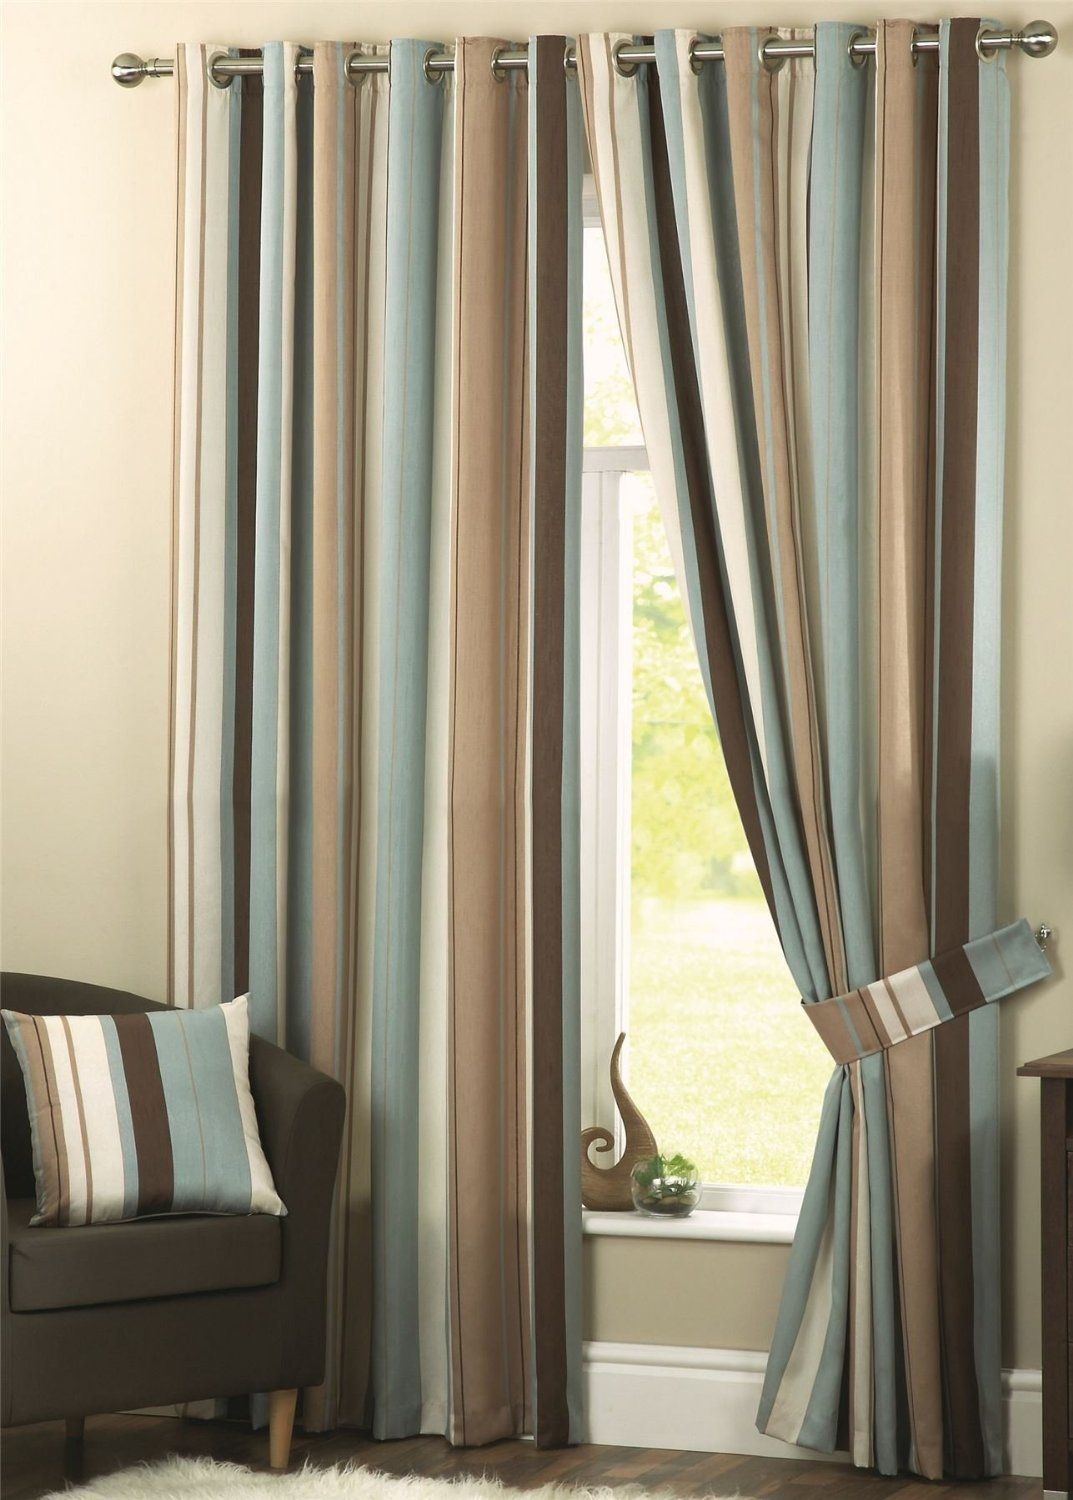 Wilson striped lined curtains